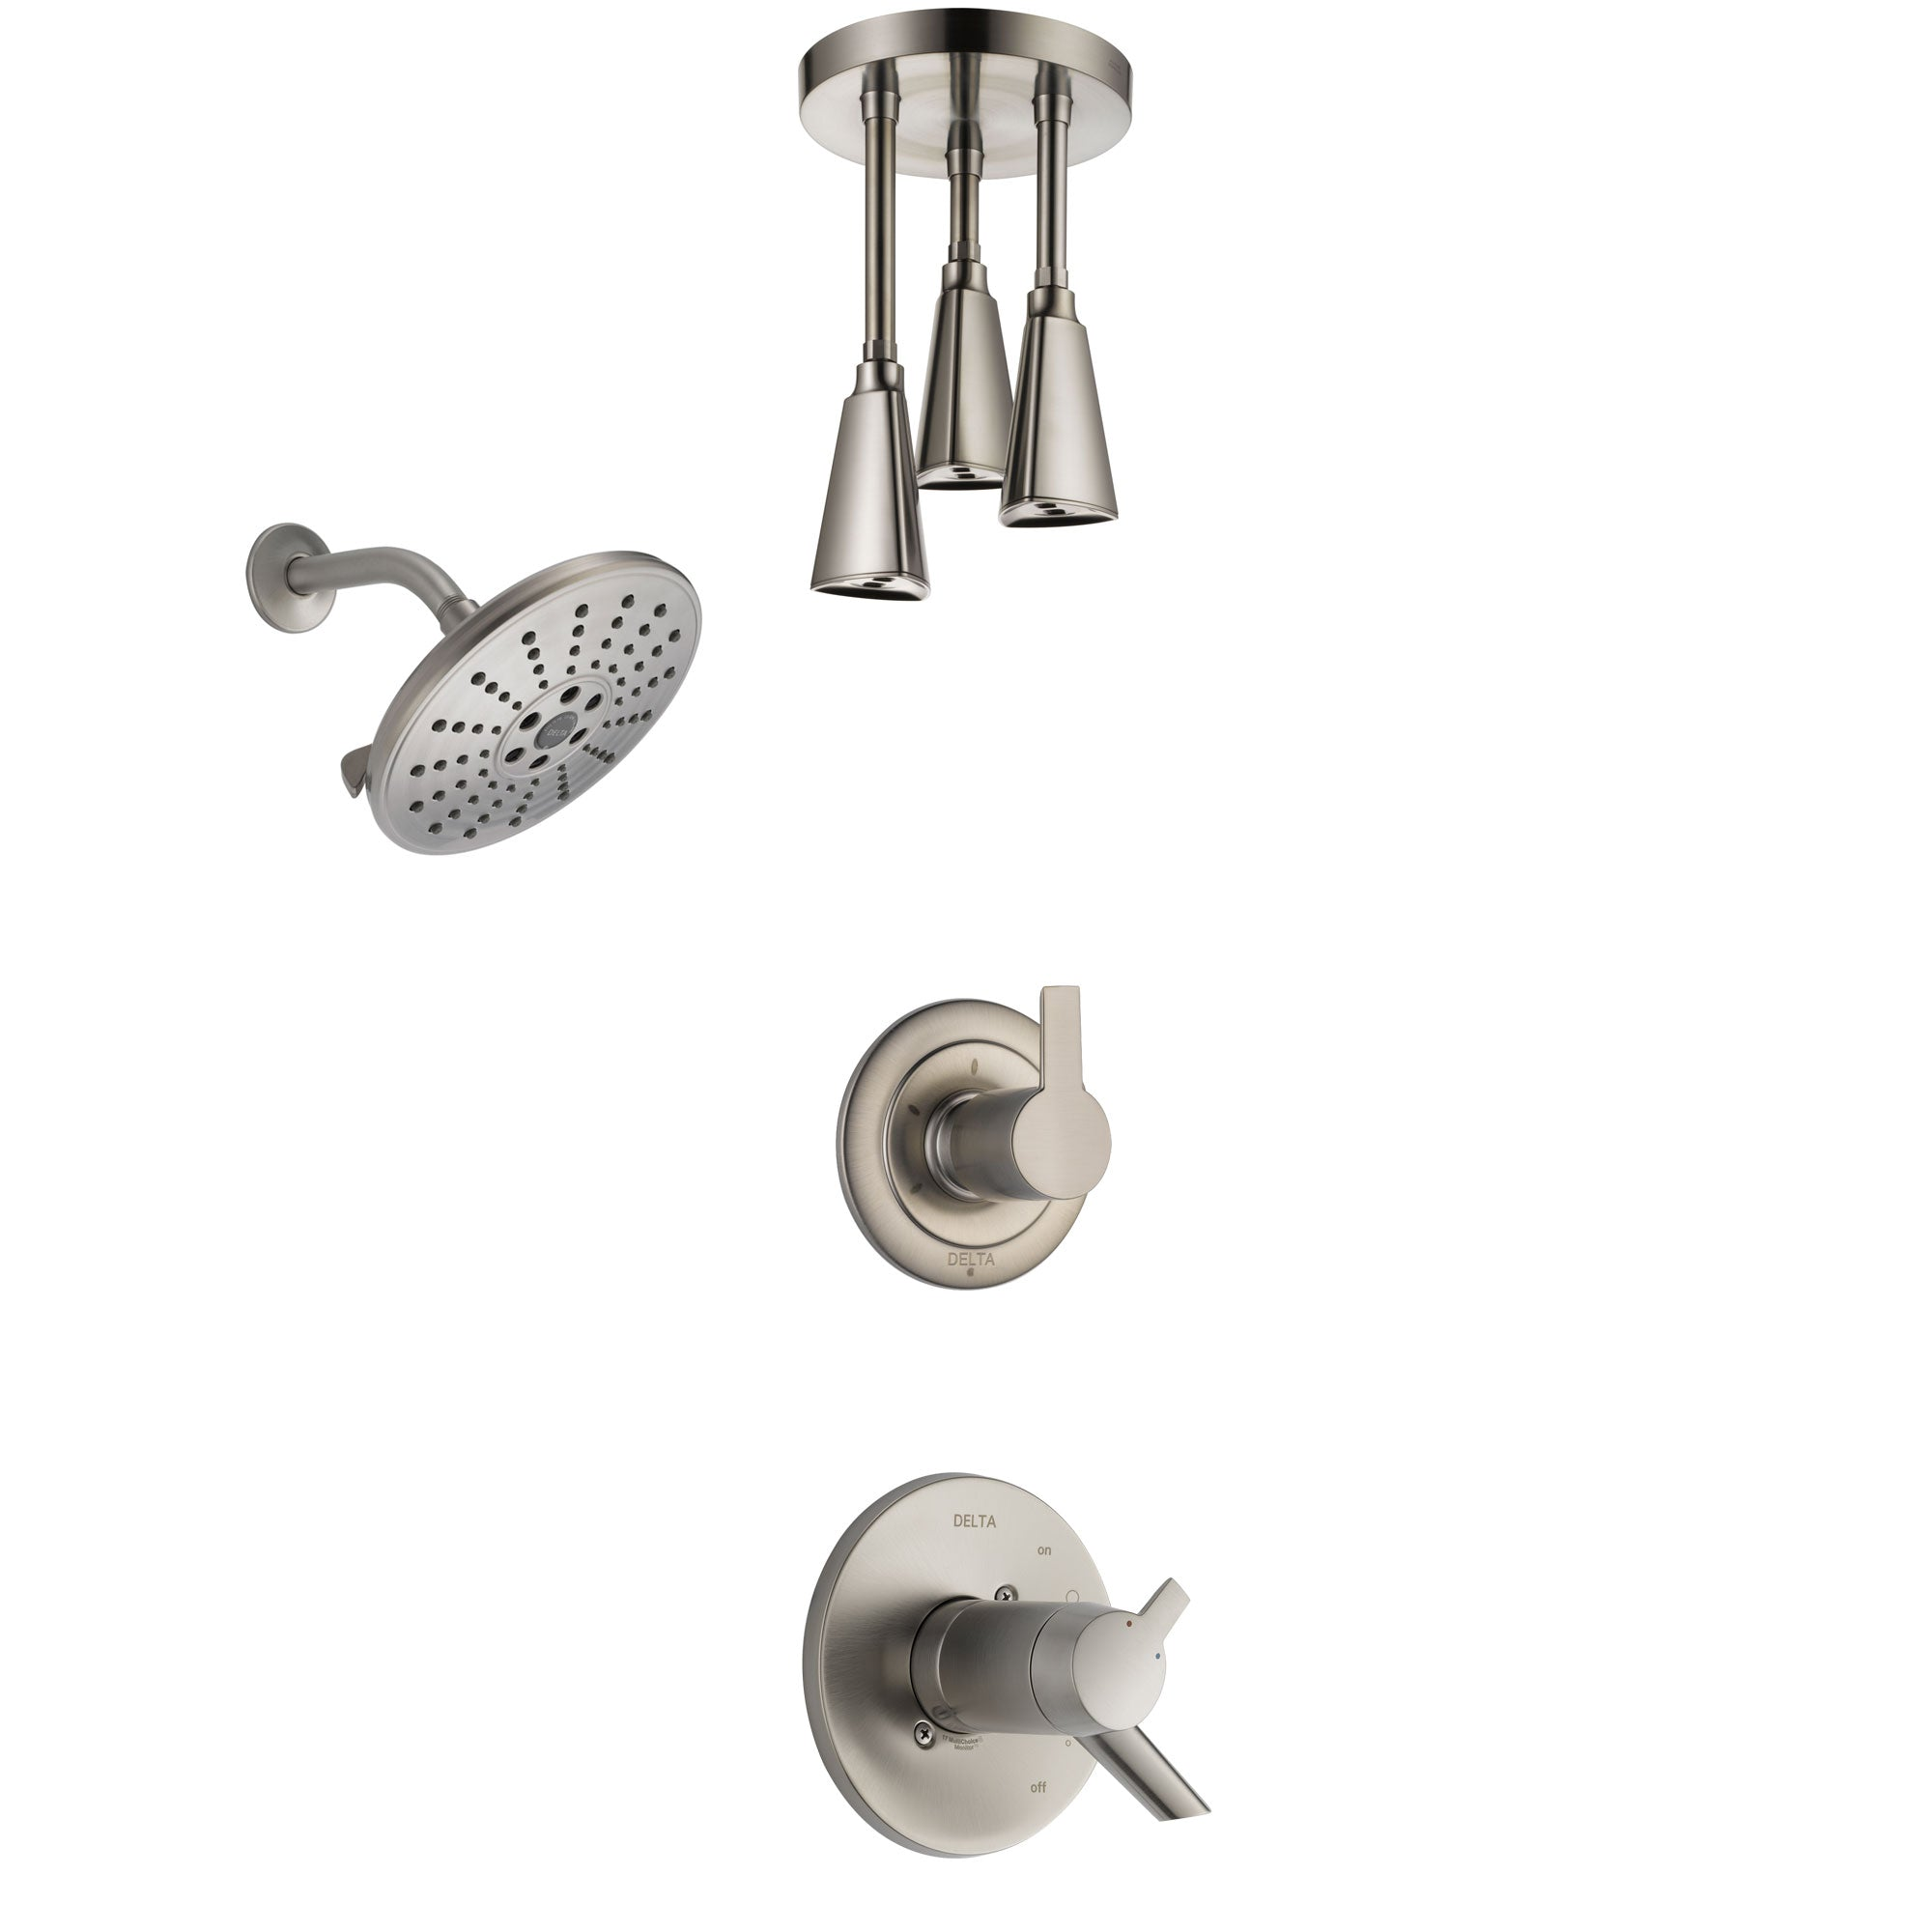 Delta Compel Dual Thermostatic Control Handle Stainless Steel Finish Shower System, Diverter, Showerhead, and Ceiling Mount Showerhead SS17T2611SS6